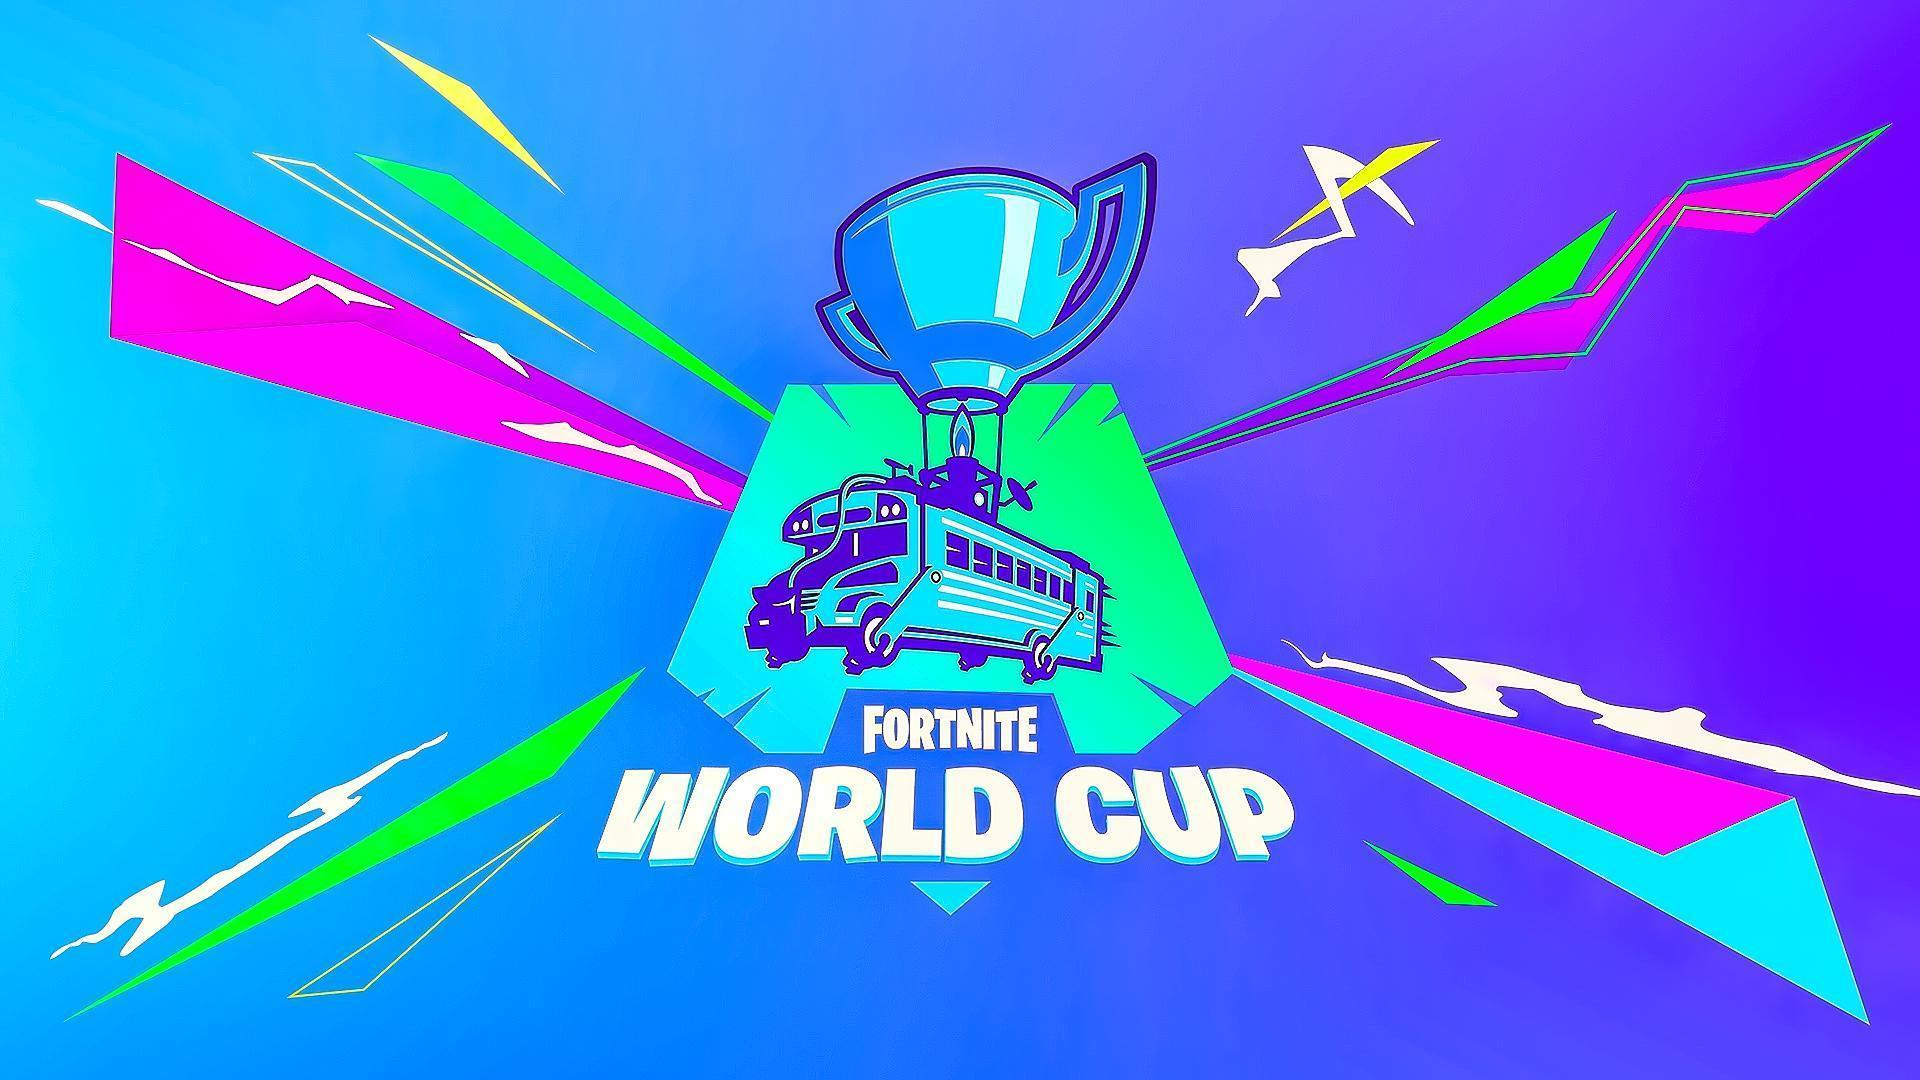 Fortnite 2019 World Cup Wallpapers Wallpaper Cave